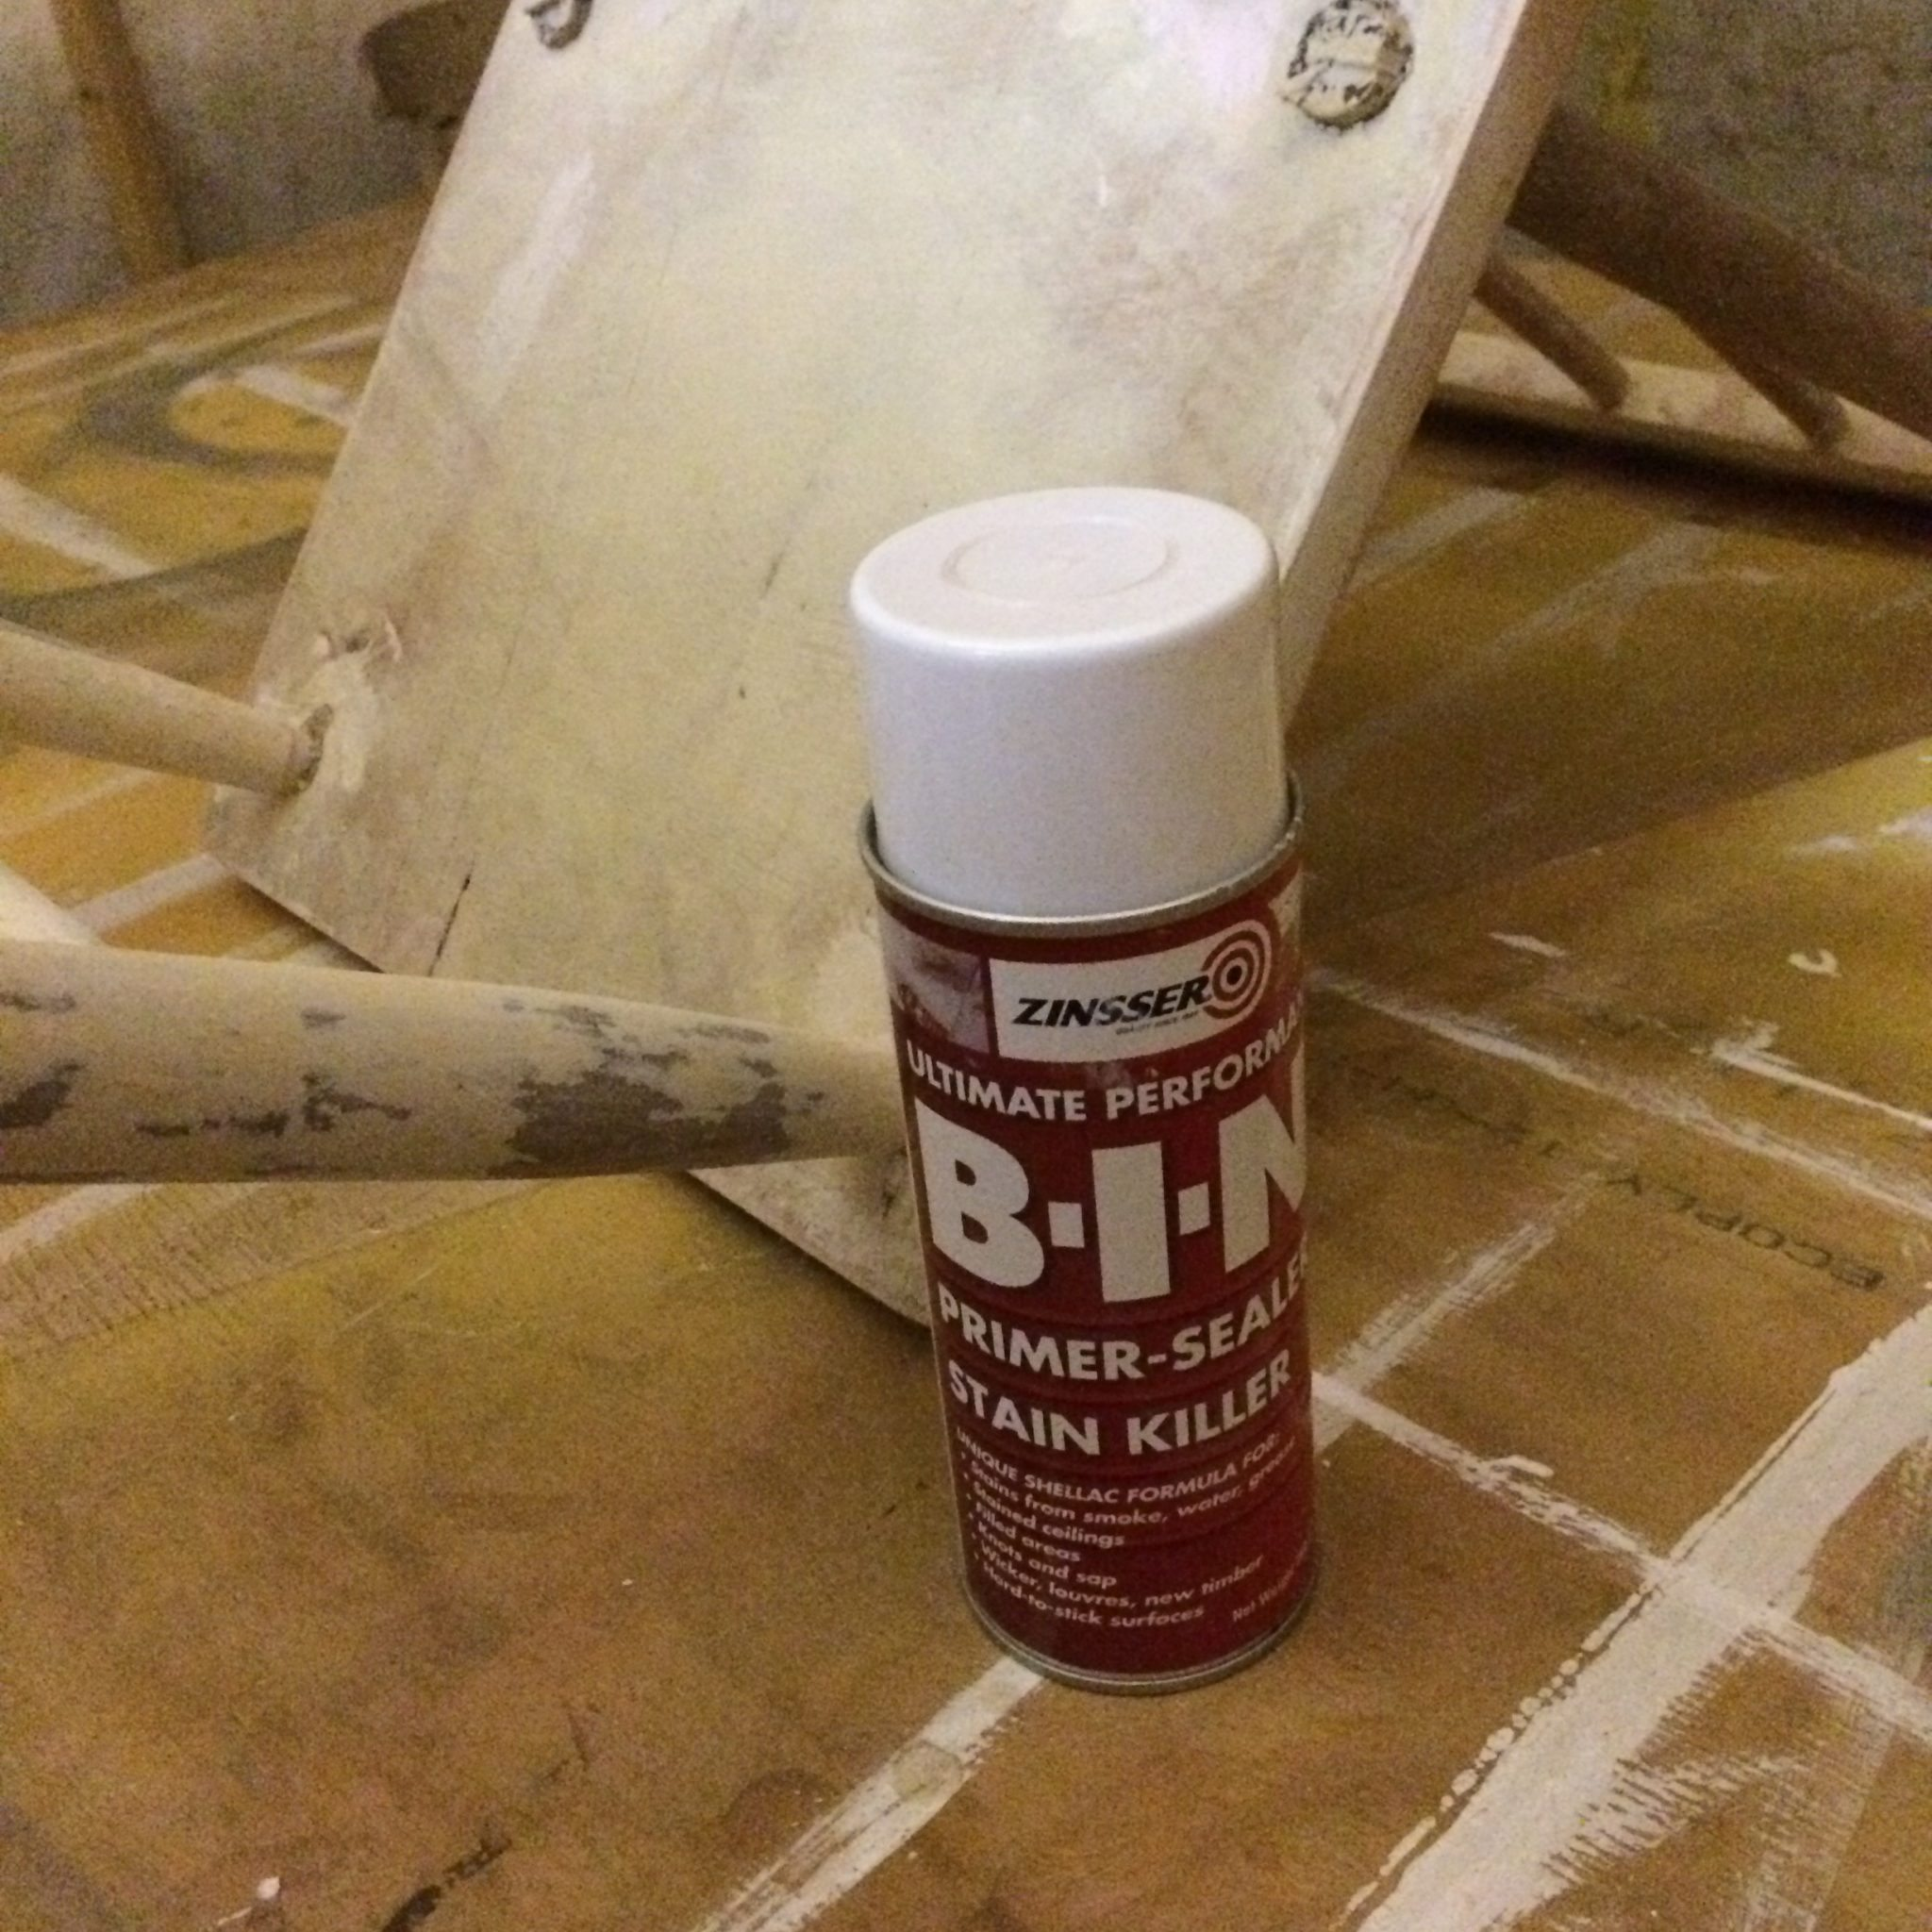 5 use a 3 in 1 spray primer all over (this is in a sanding booth) outside wearing a mask.